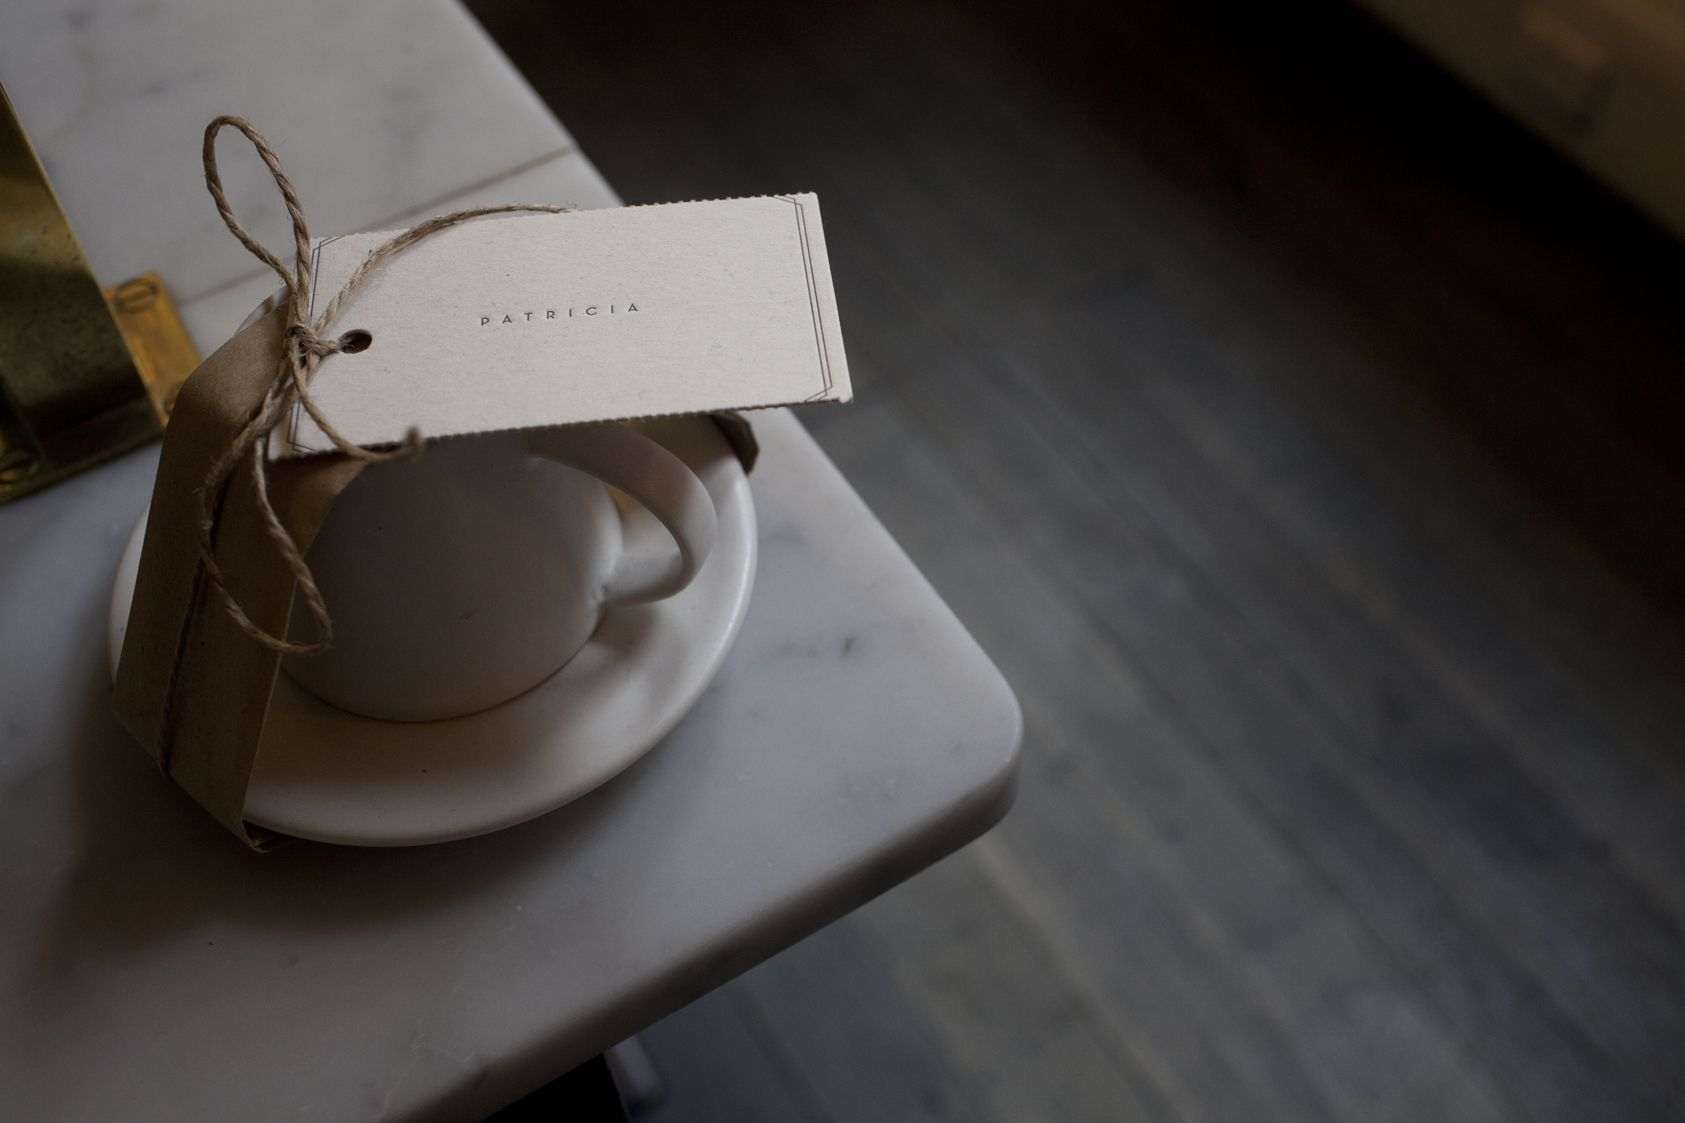 Melbourne Service And Style At Patricia Coffee Brewers - Sprudge.com & Melbourne: Service And Style At Patricia Coffee Brewers - Sprudge ...